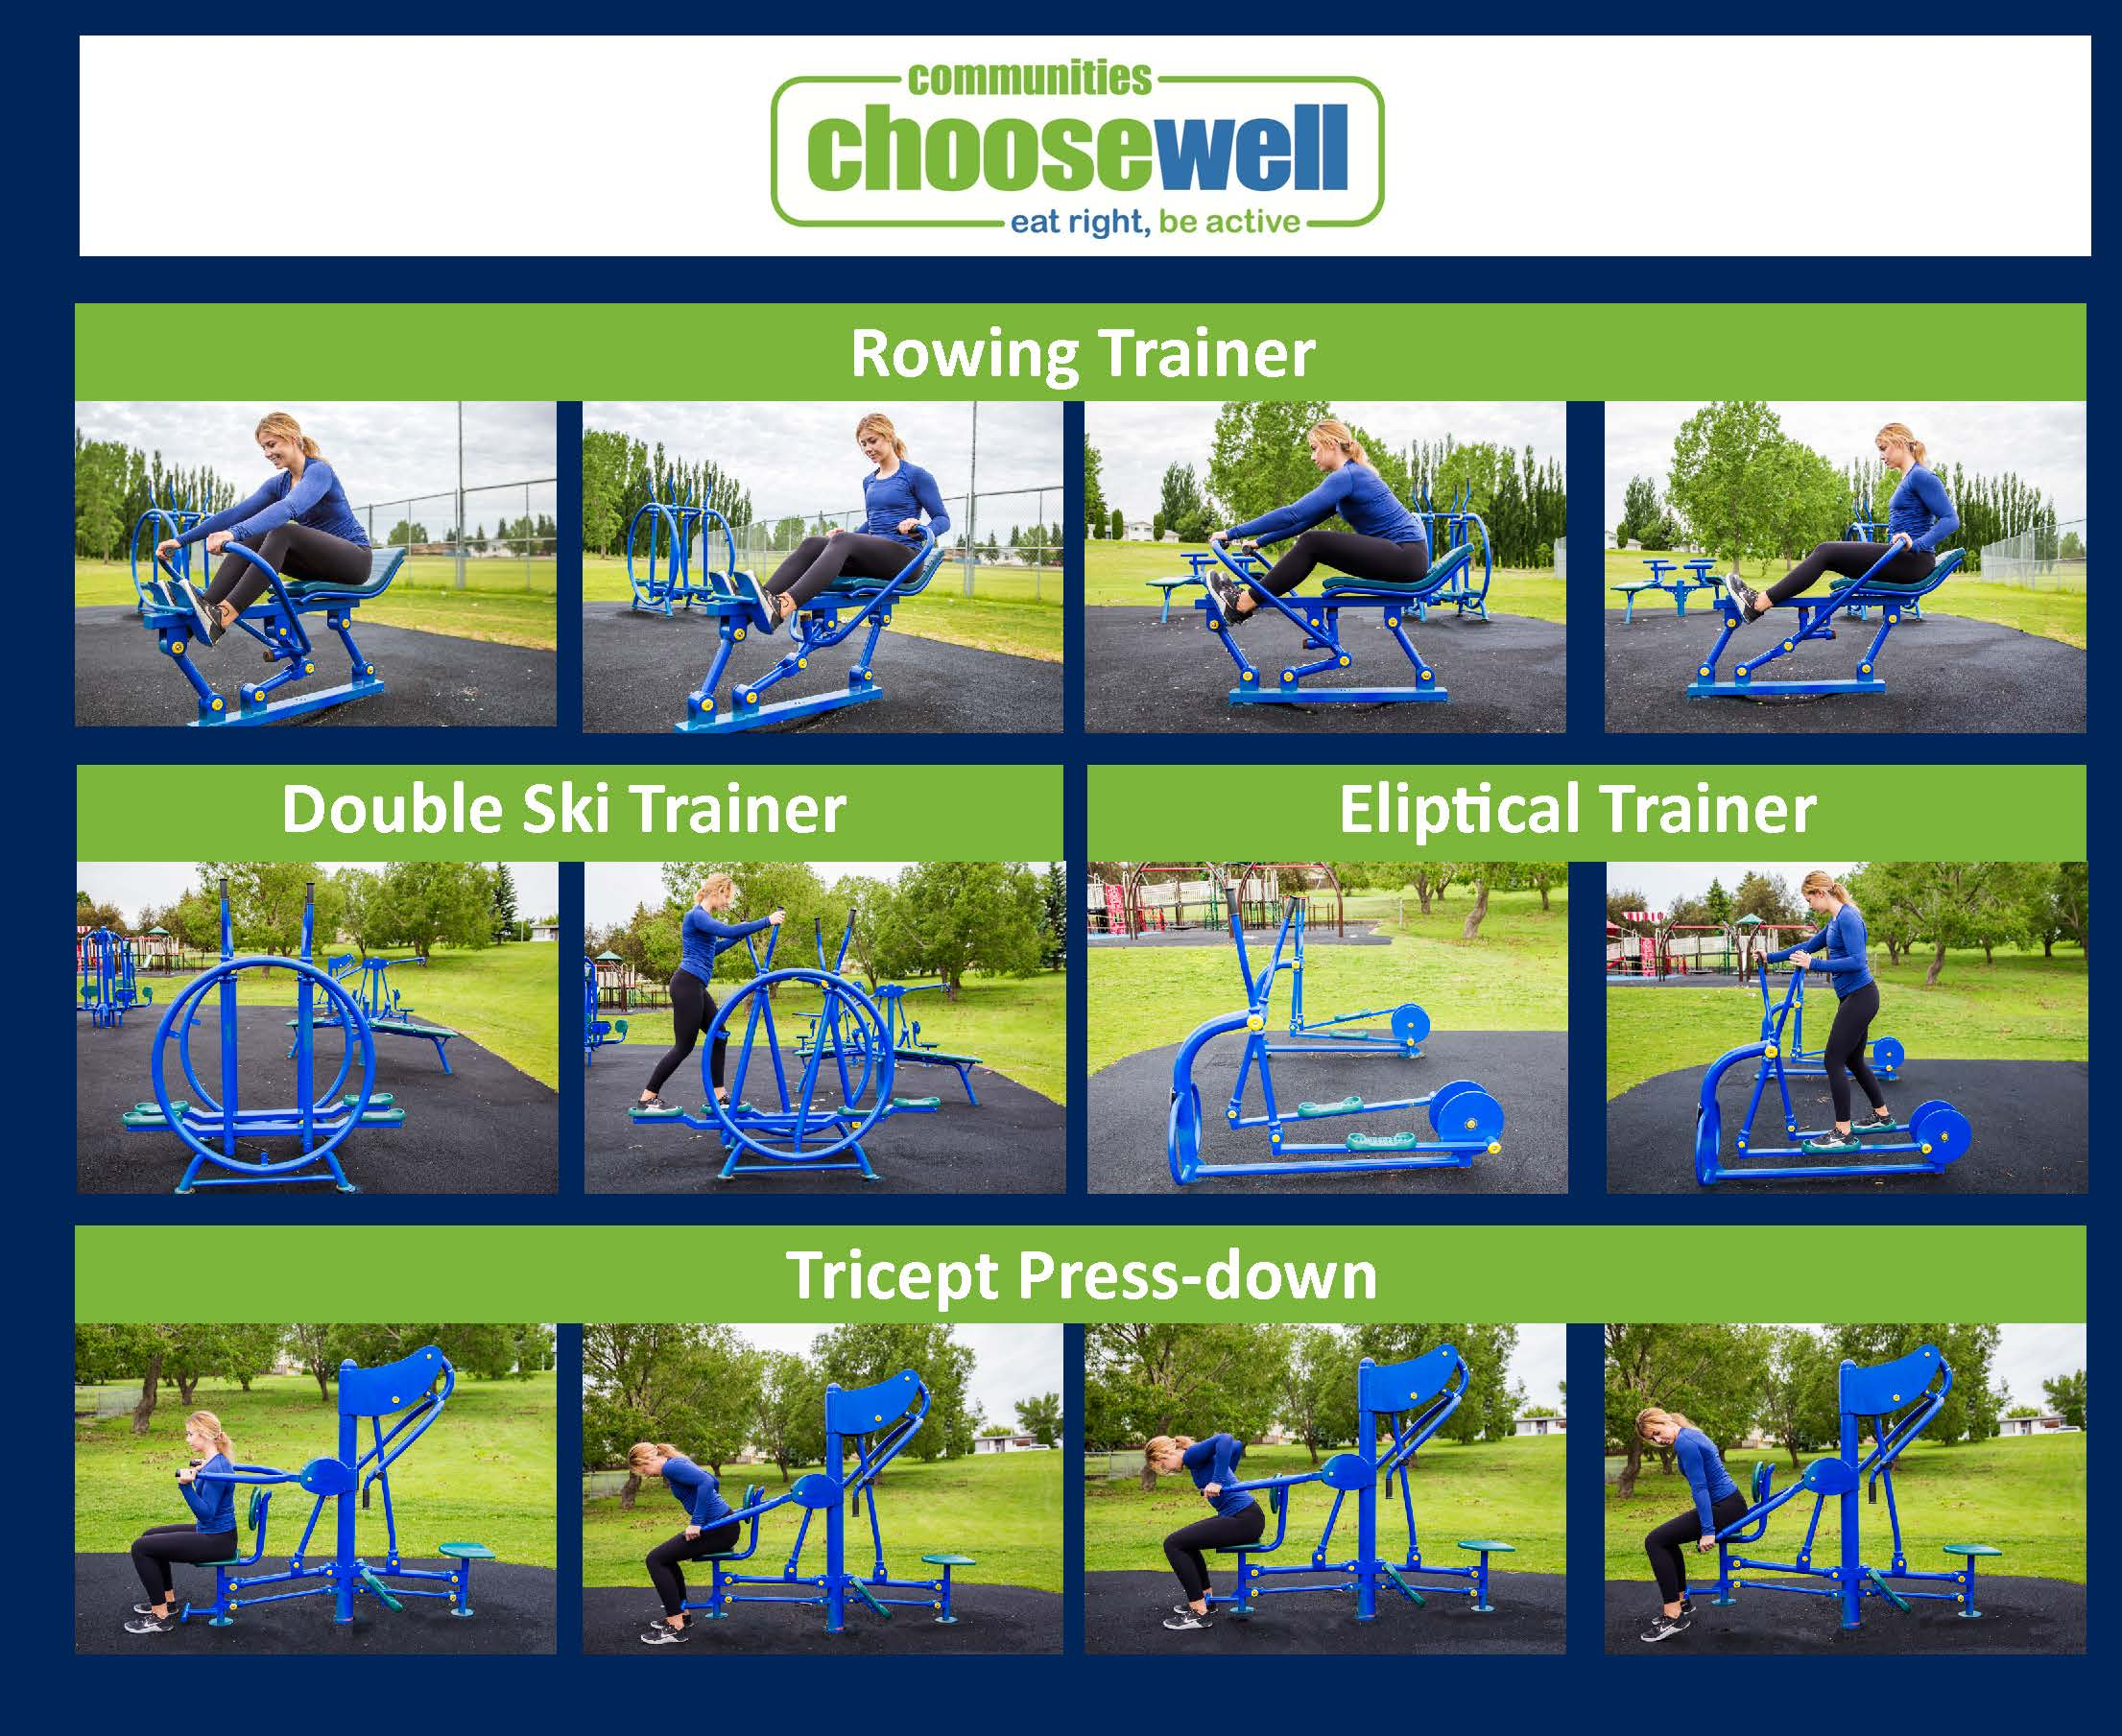 Choosewell Photo Layout for Web USE 1